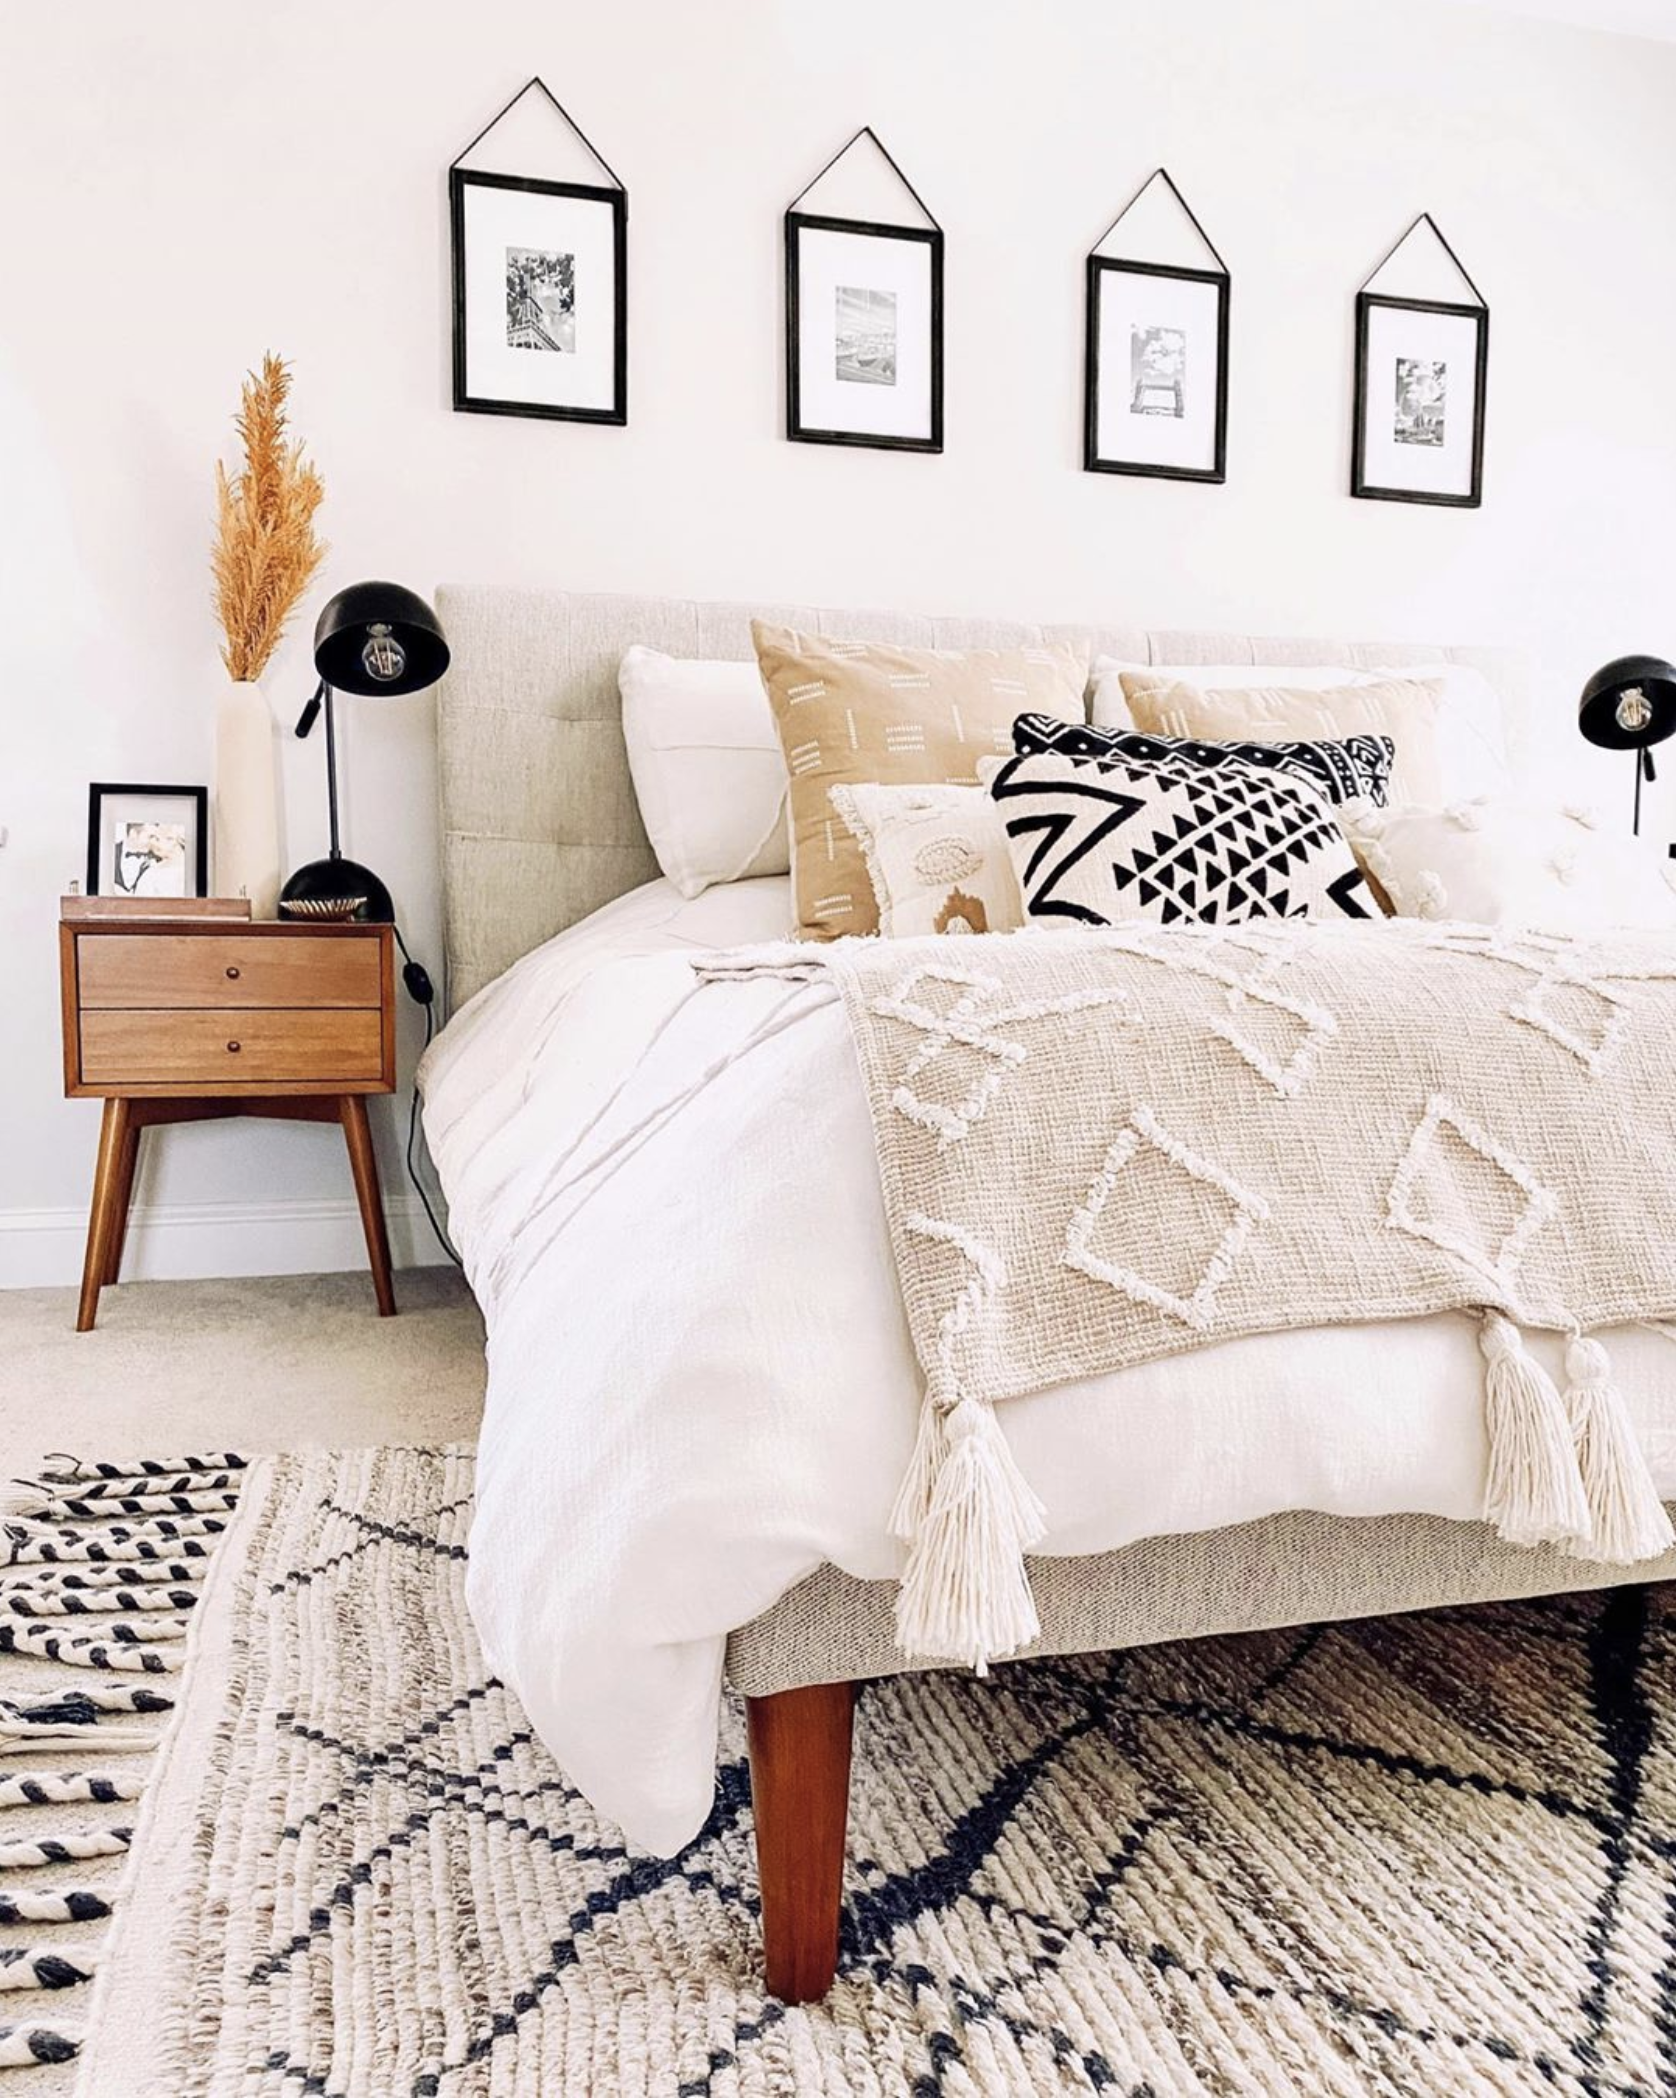 Boho-Chic bedroom with tribal/aztec rug and pillows, Mid-century modern nightstand, IMAGE: via @homedesignbyjaime on Instagram.